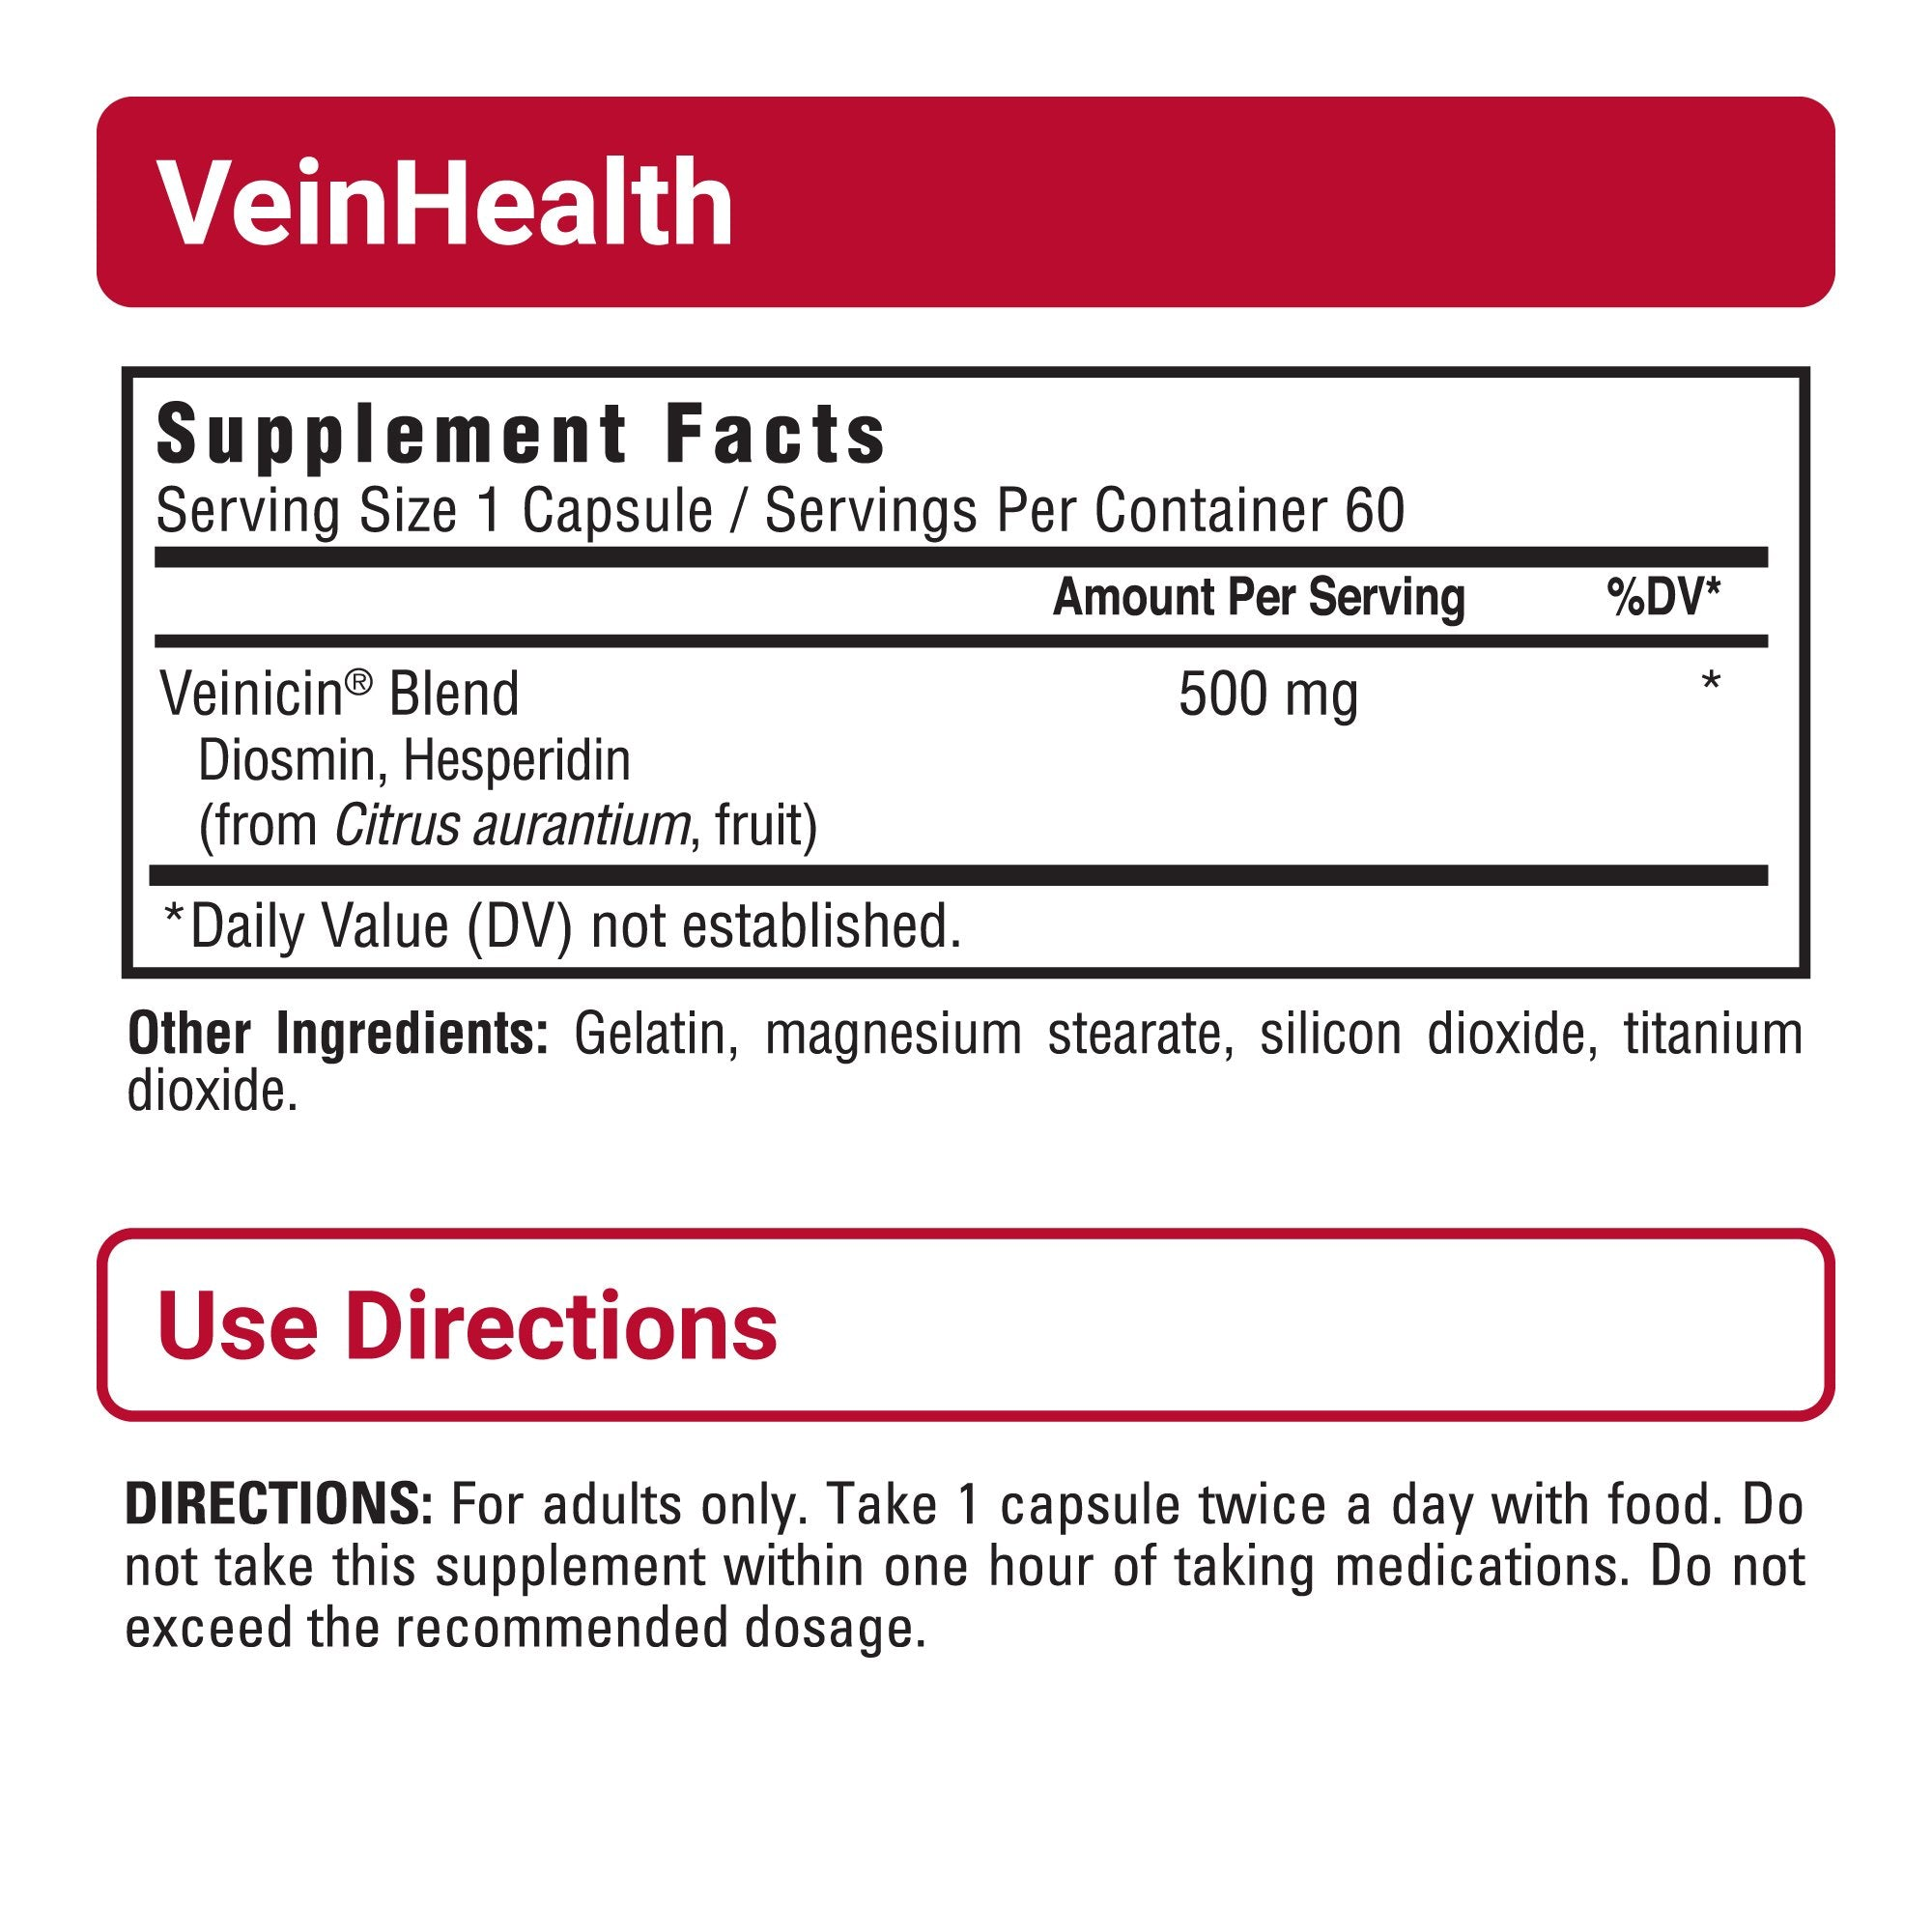 VeinHealth sup facts